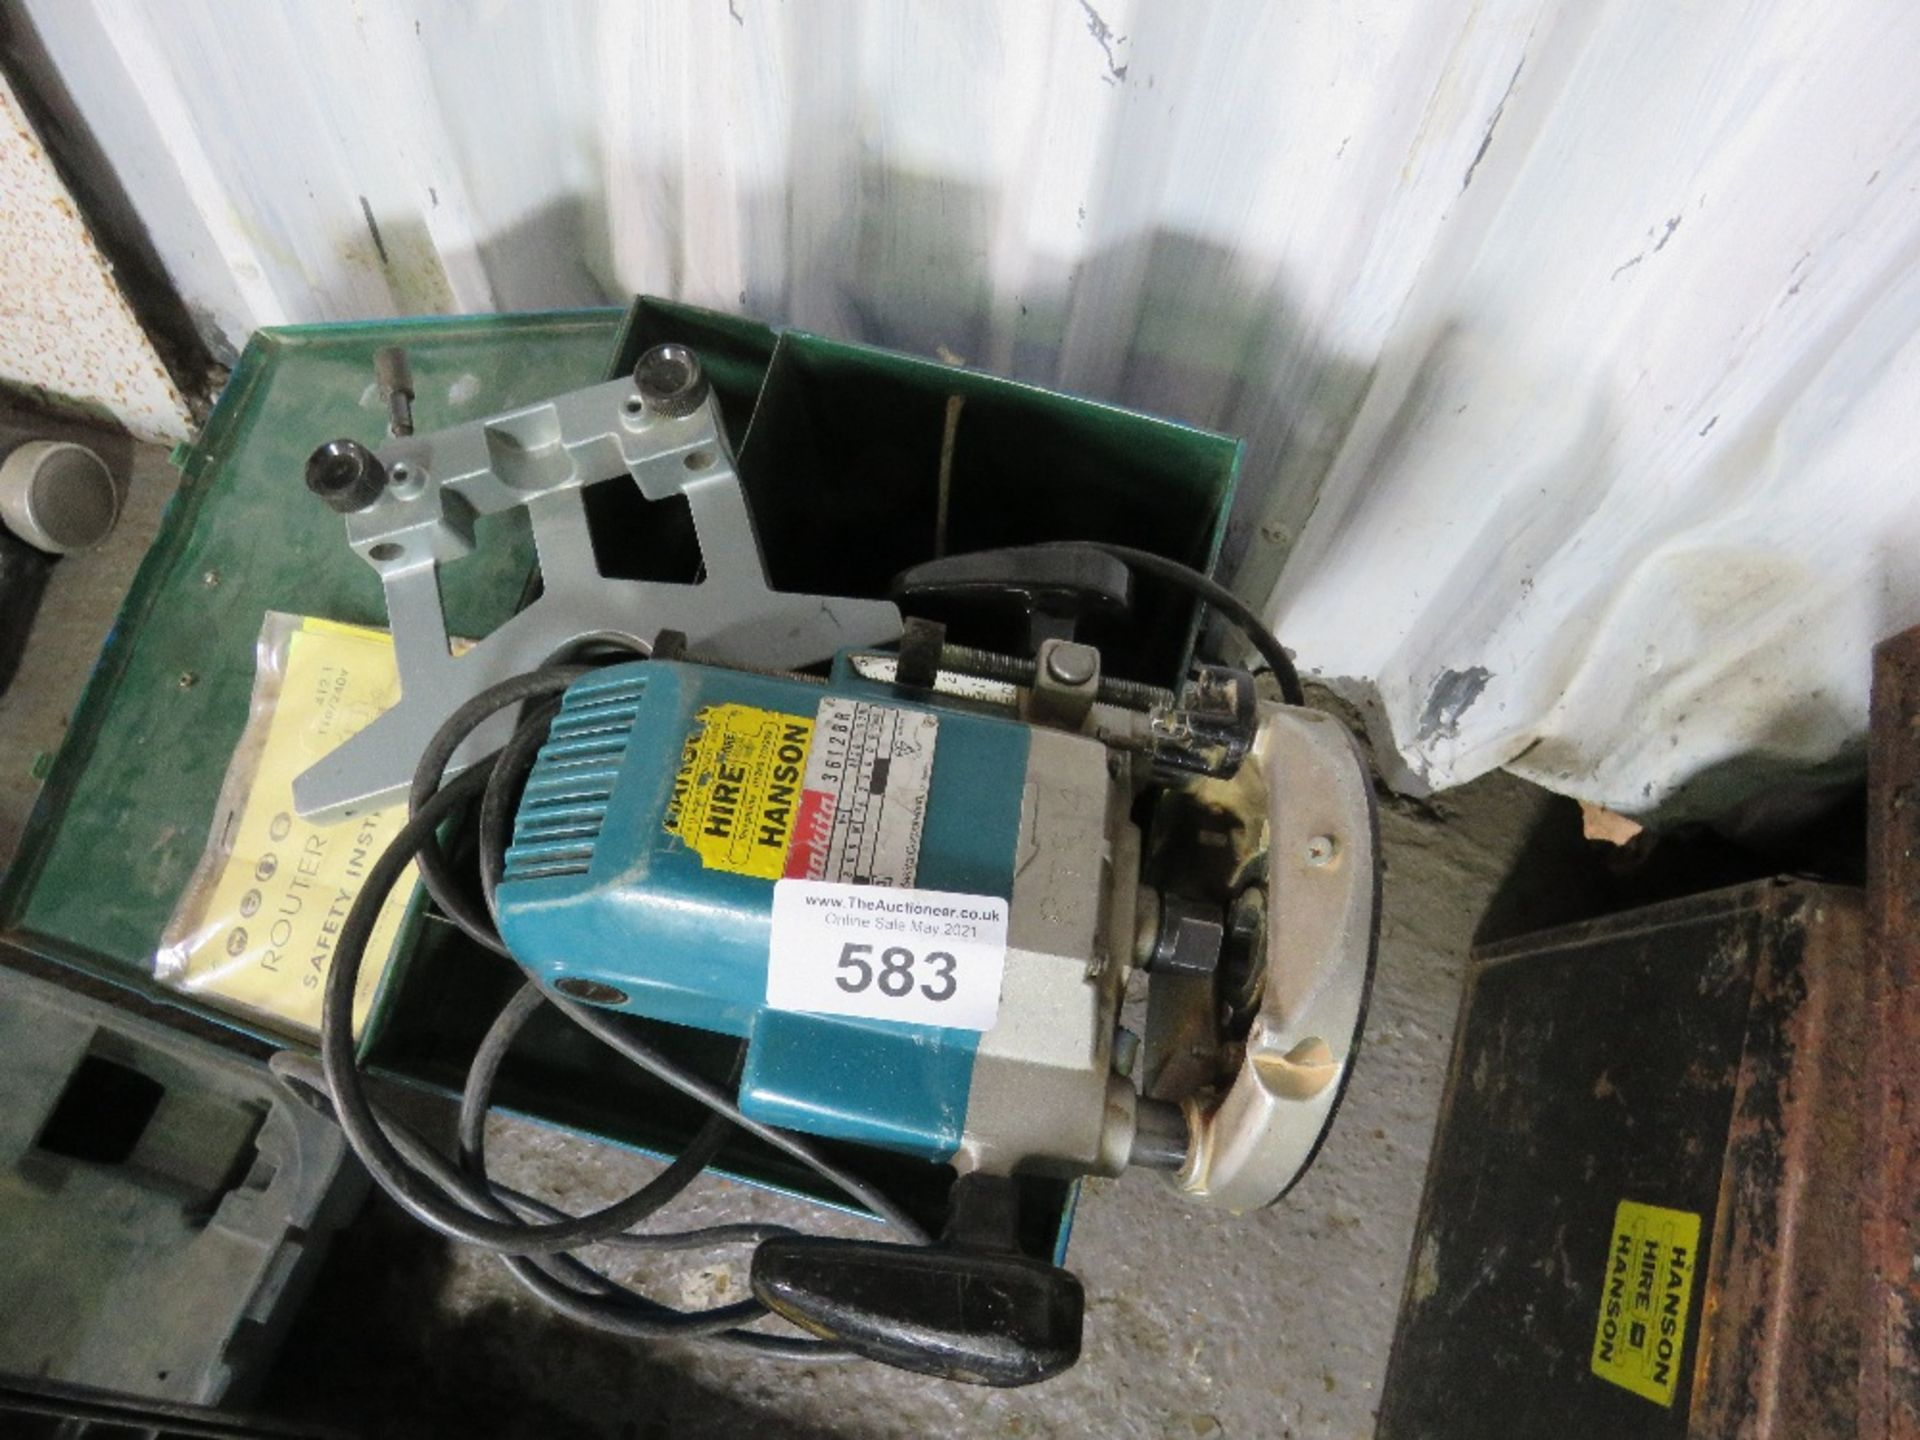 MAKITA 110VOLT ROUTER WITH GUIDE. UNTESTED, CONDITION UNKNOWN.